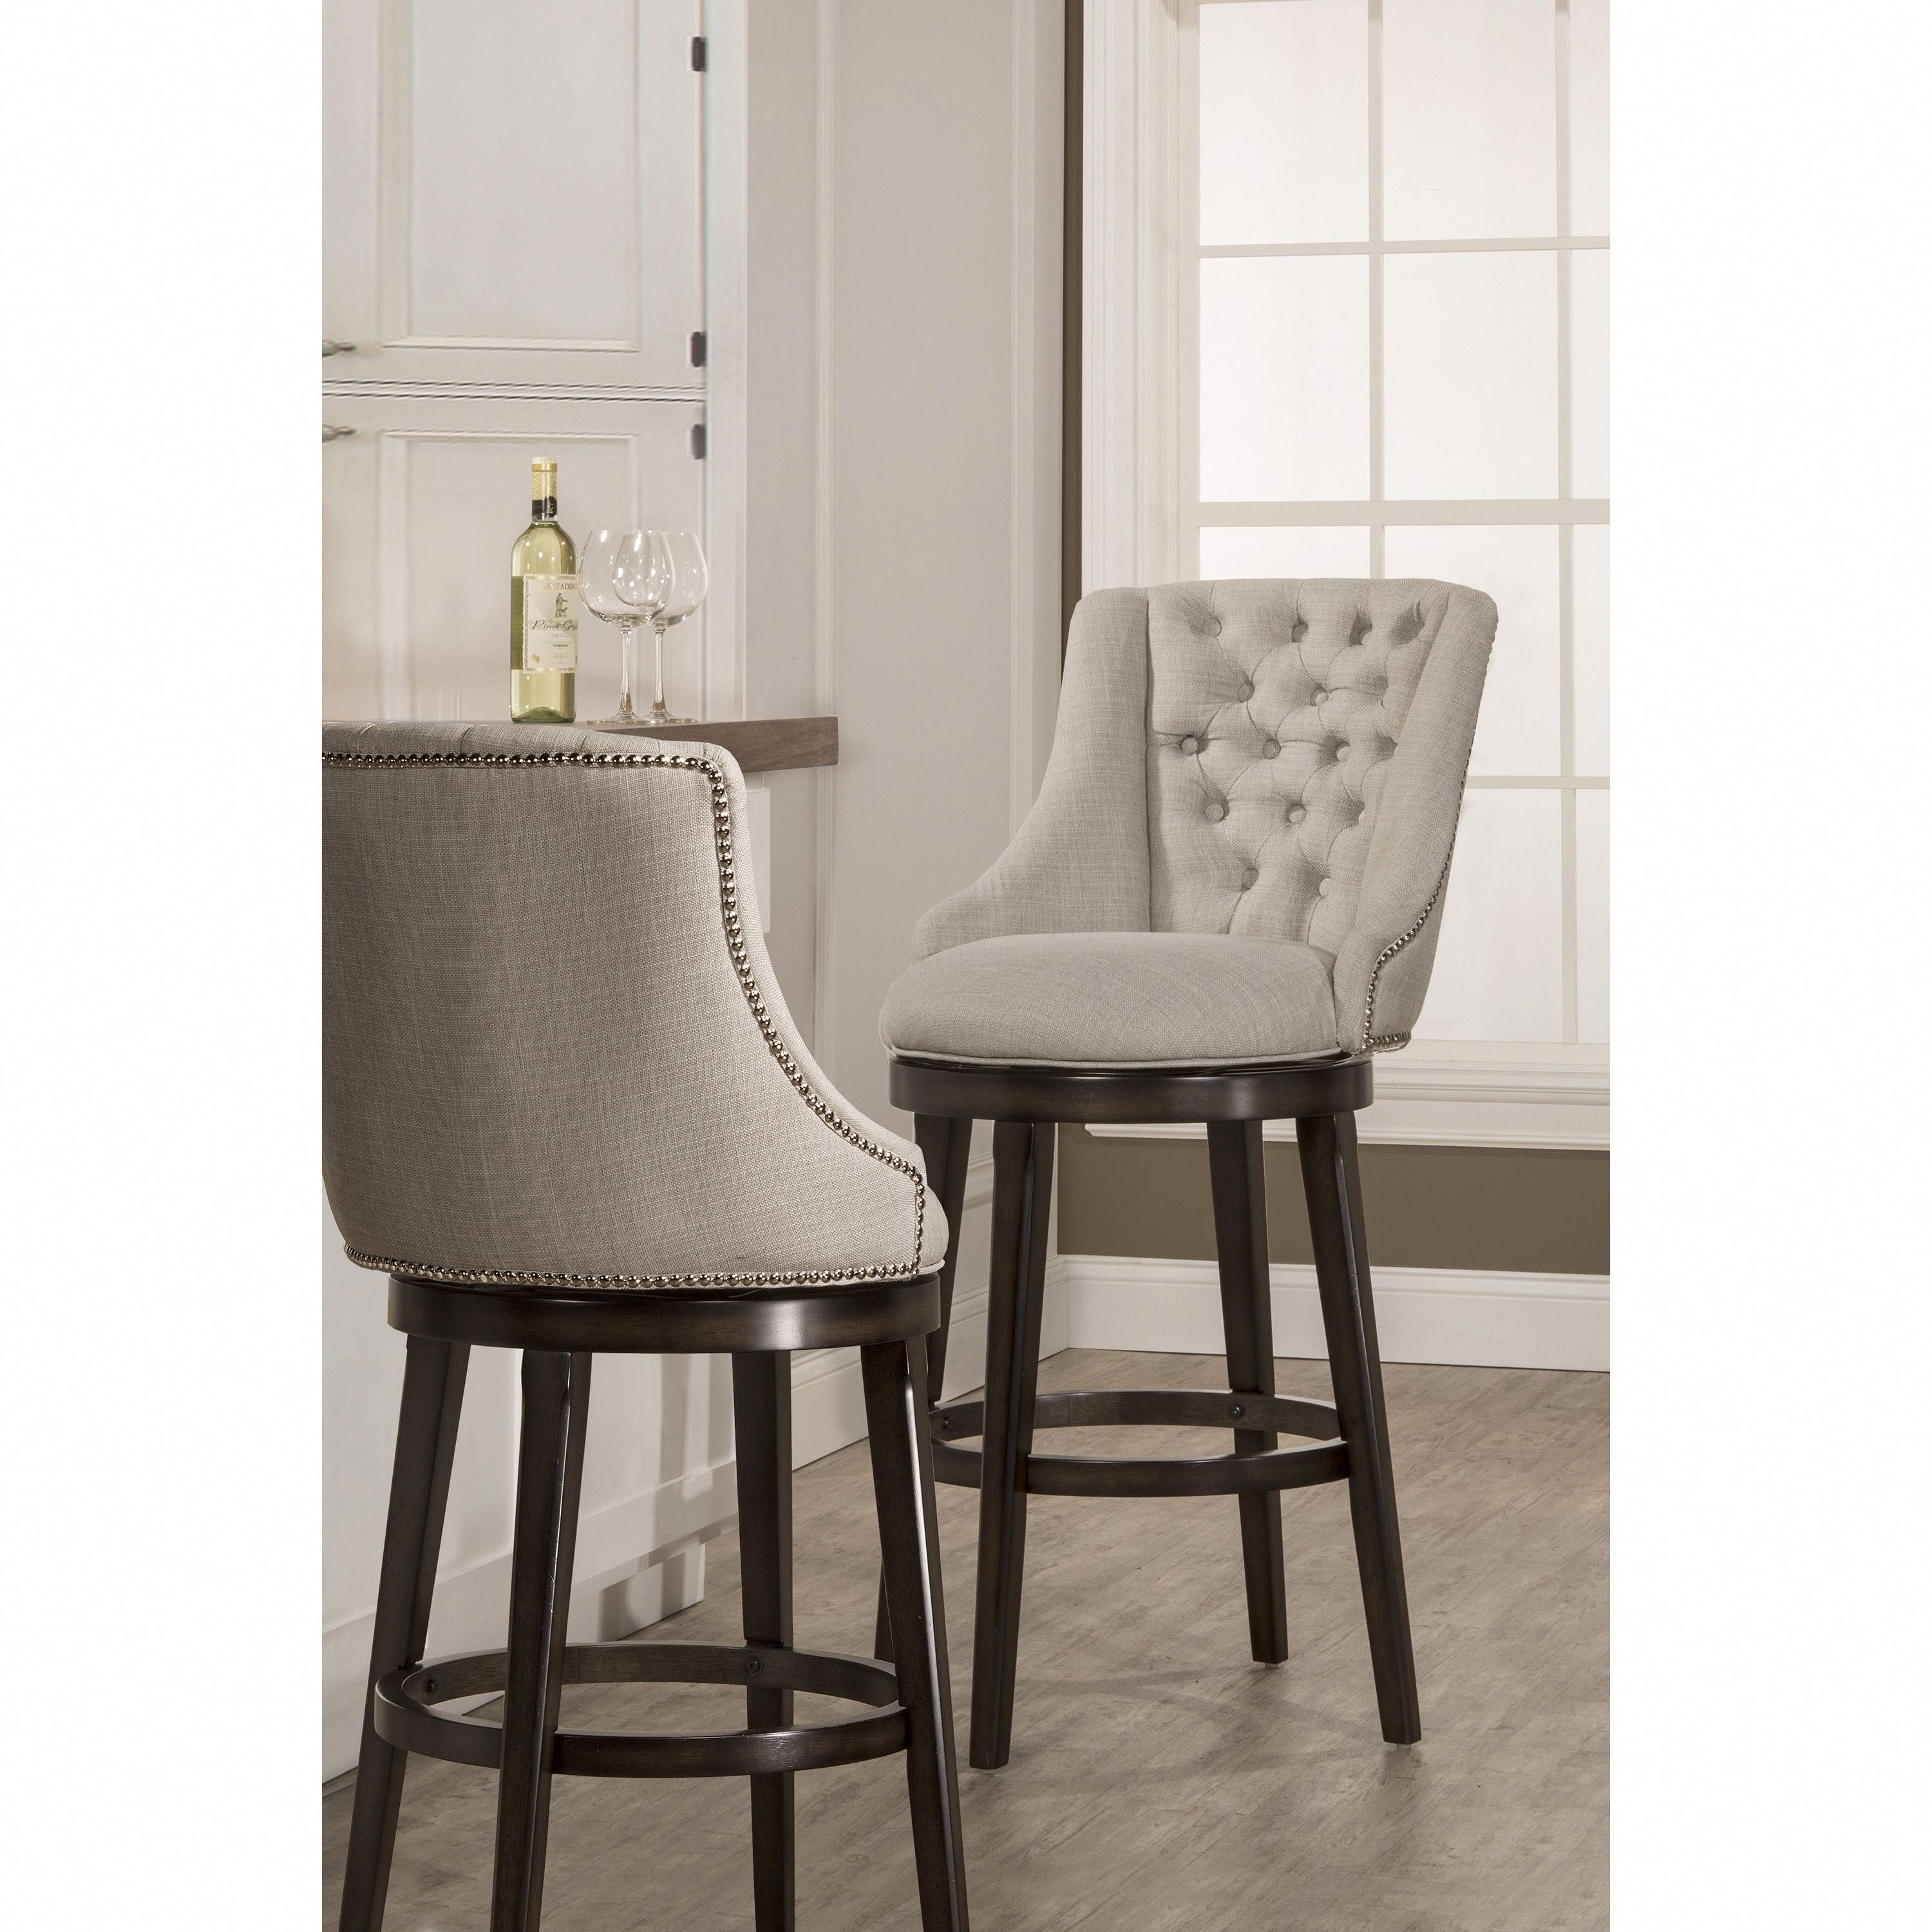 """Acquire fantastic recommendations on """"bar furniture ideas houses"""